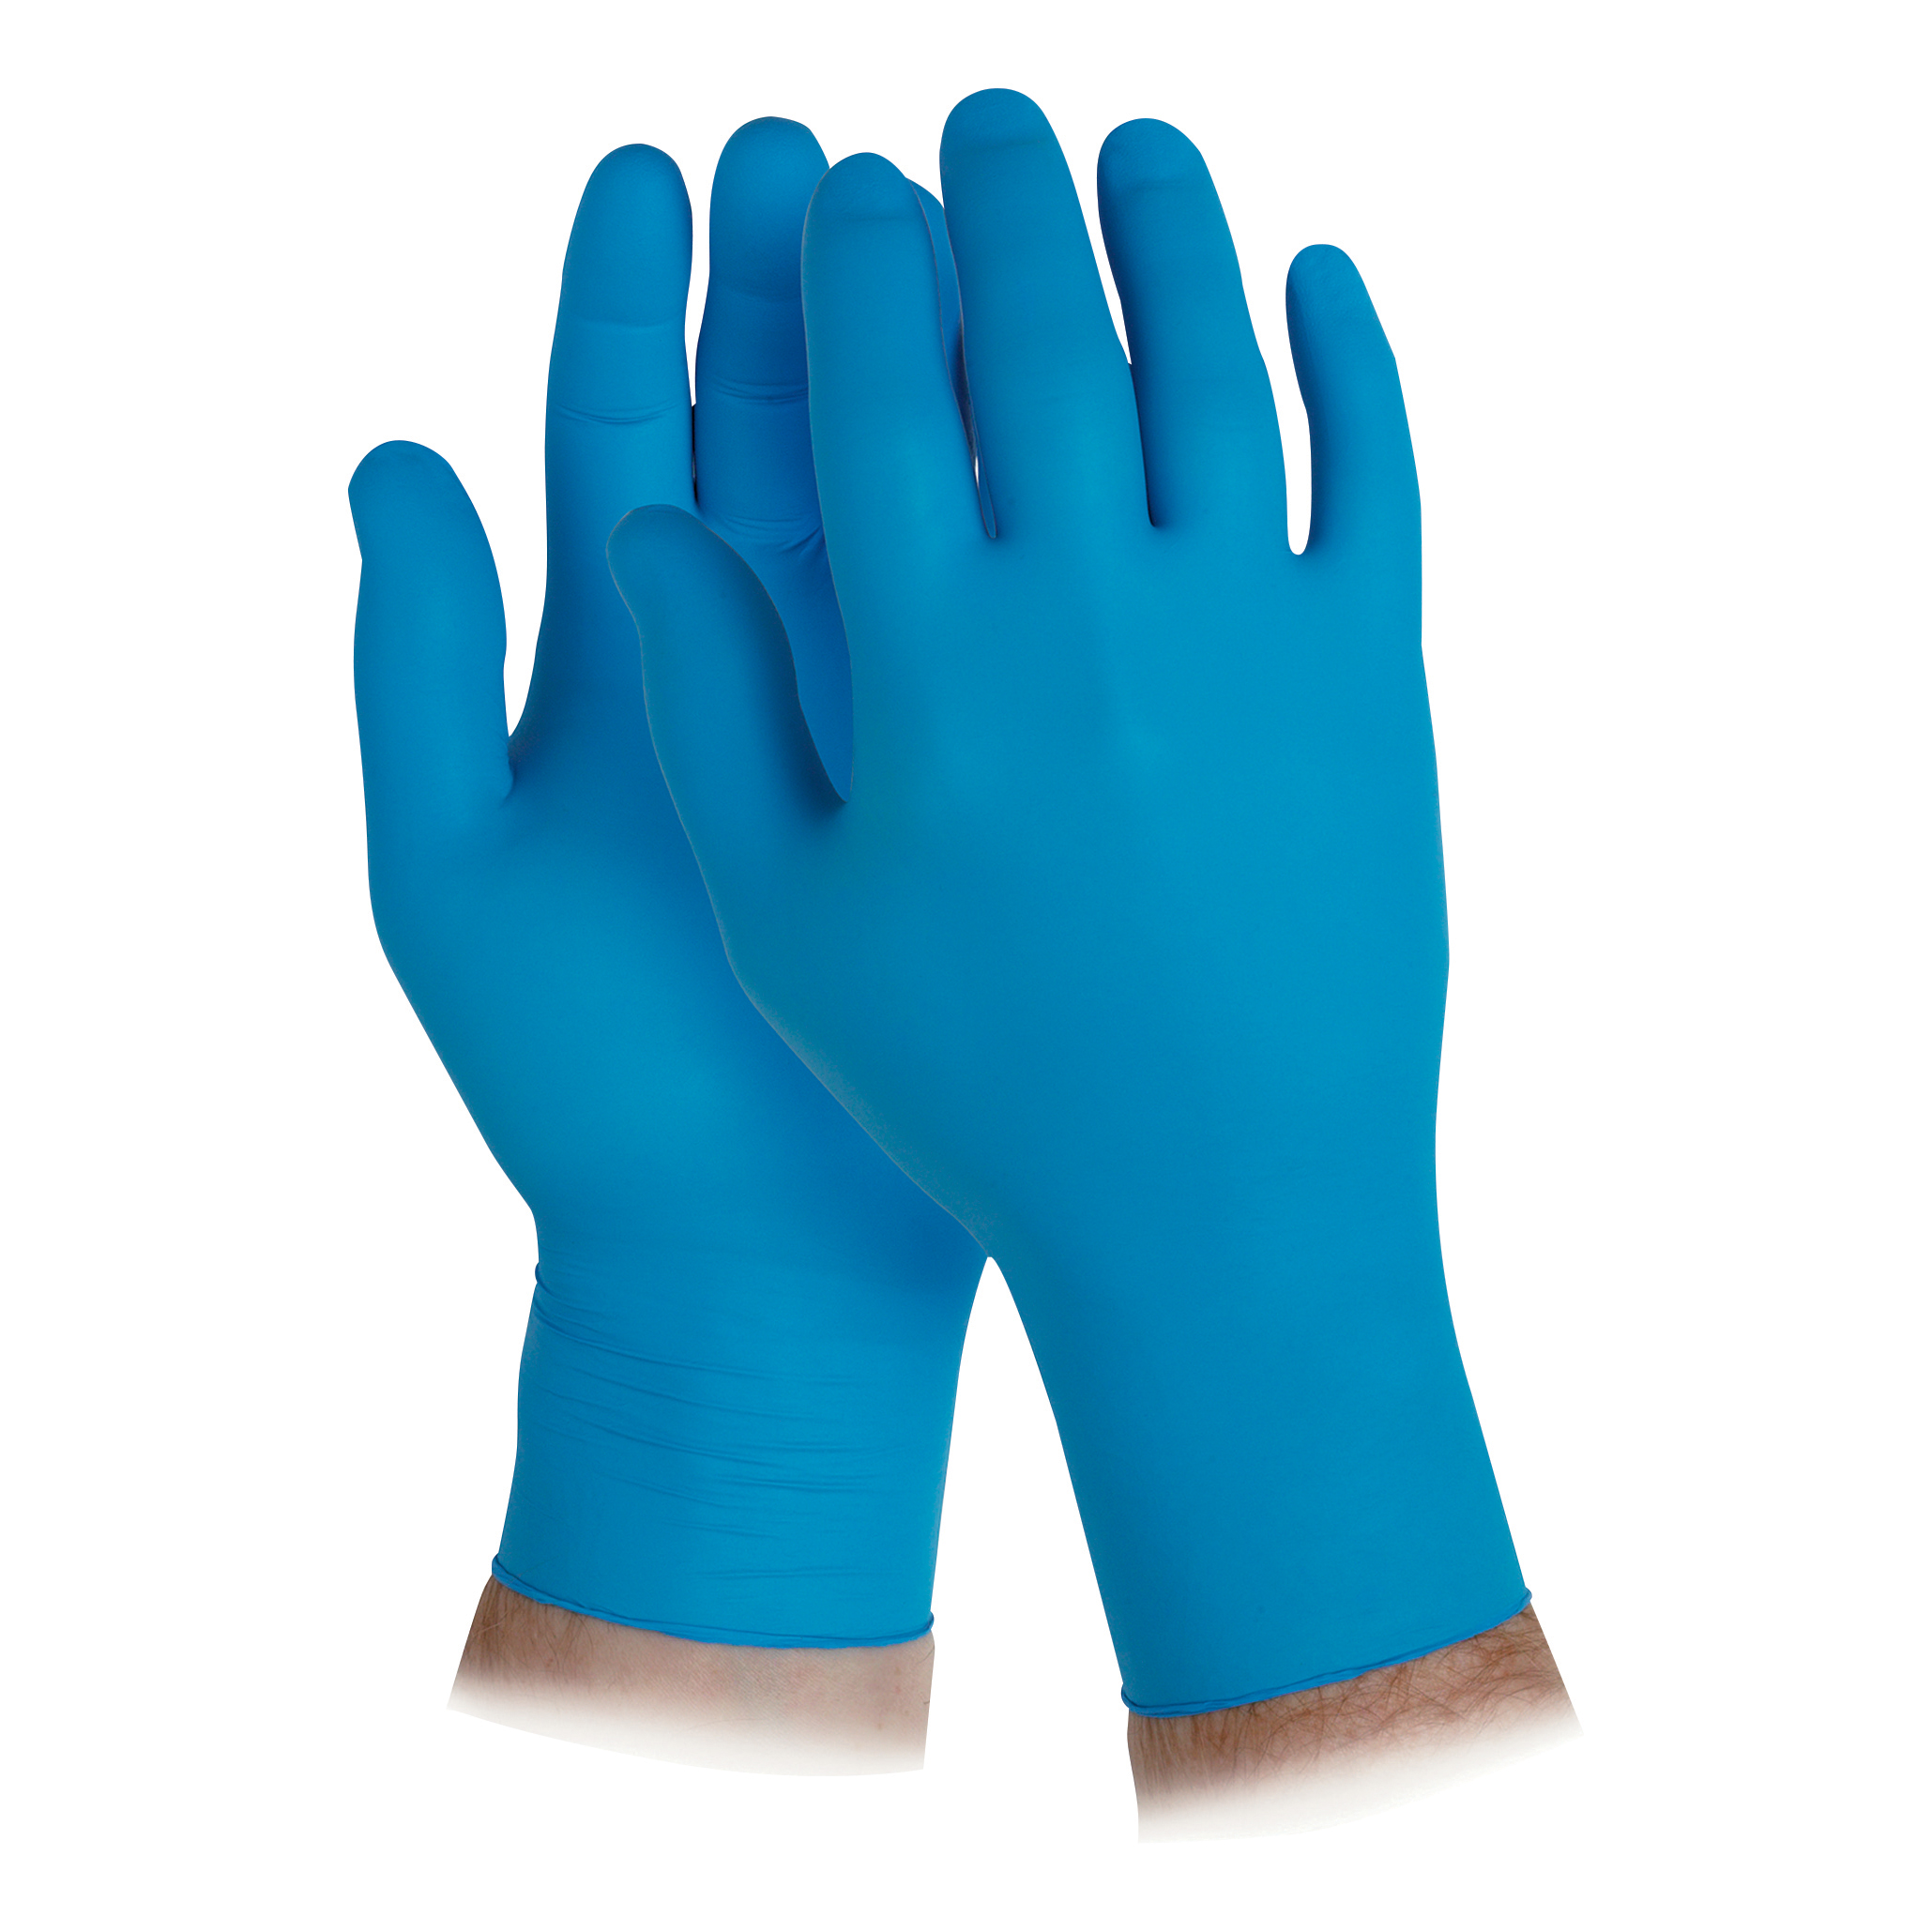 Hand Protection KleenGuard G10 Nitrile Gloves Powder Free Natural Rubber Medium Arctic Blue Ref 90097 Box 200